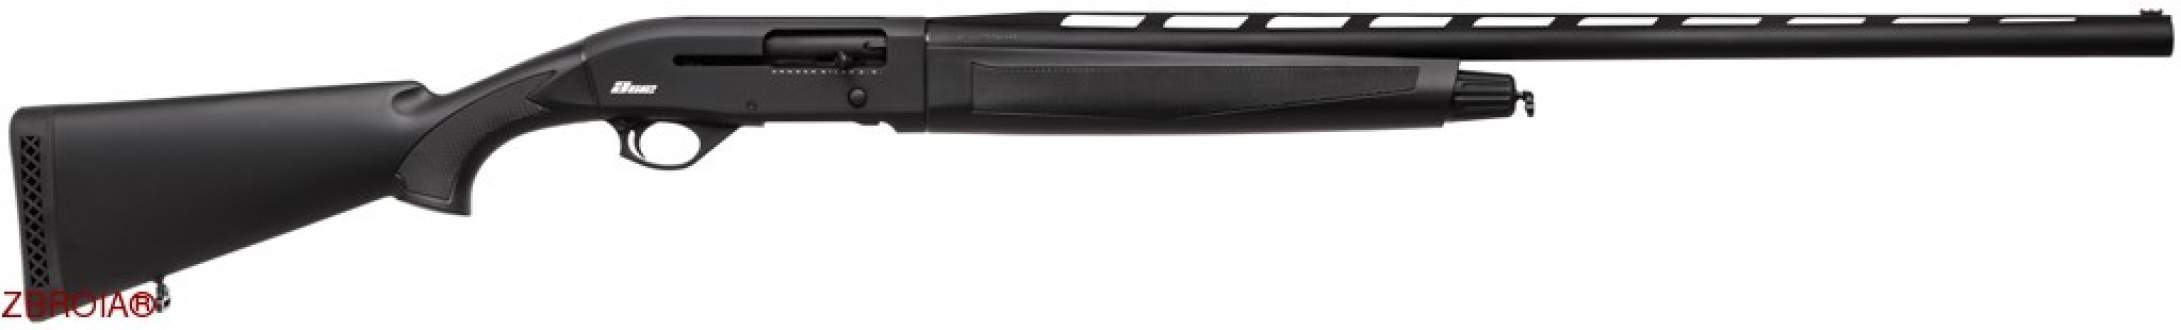 Ружье Armsan A612 S High Rib SoftTouch Black Synthetic кал. 12/76